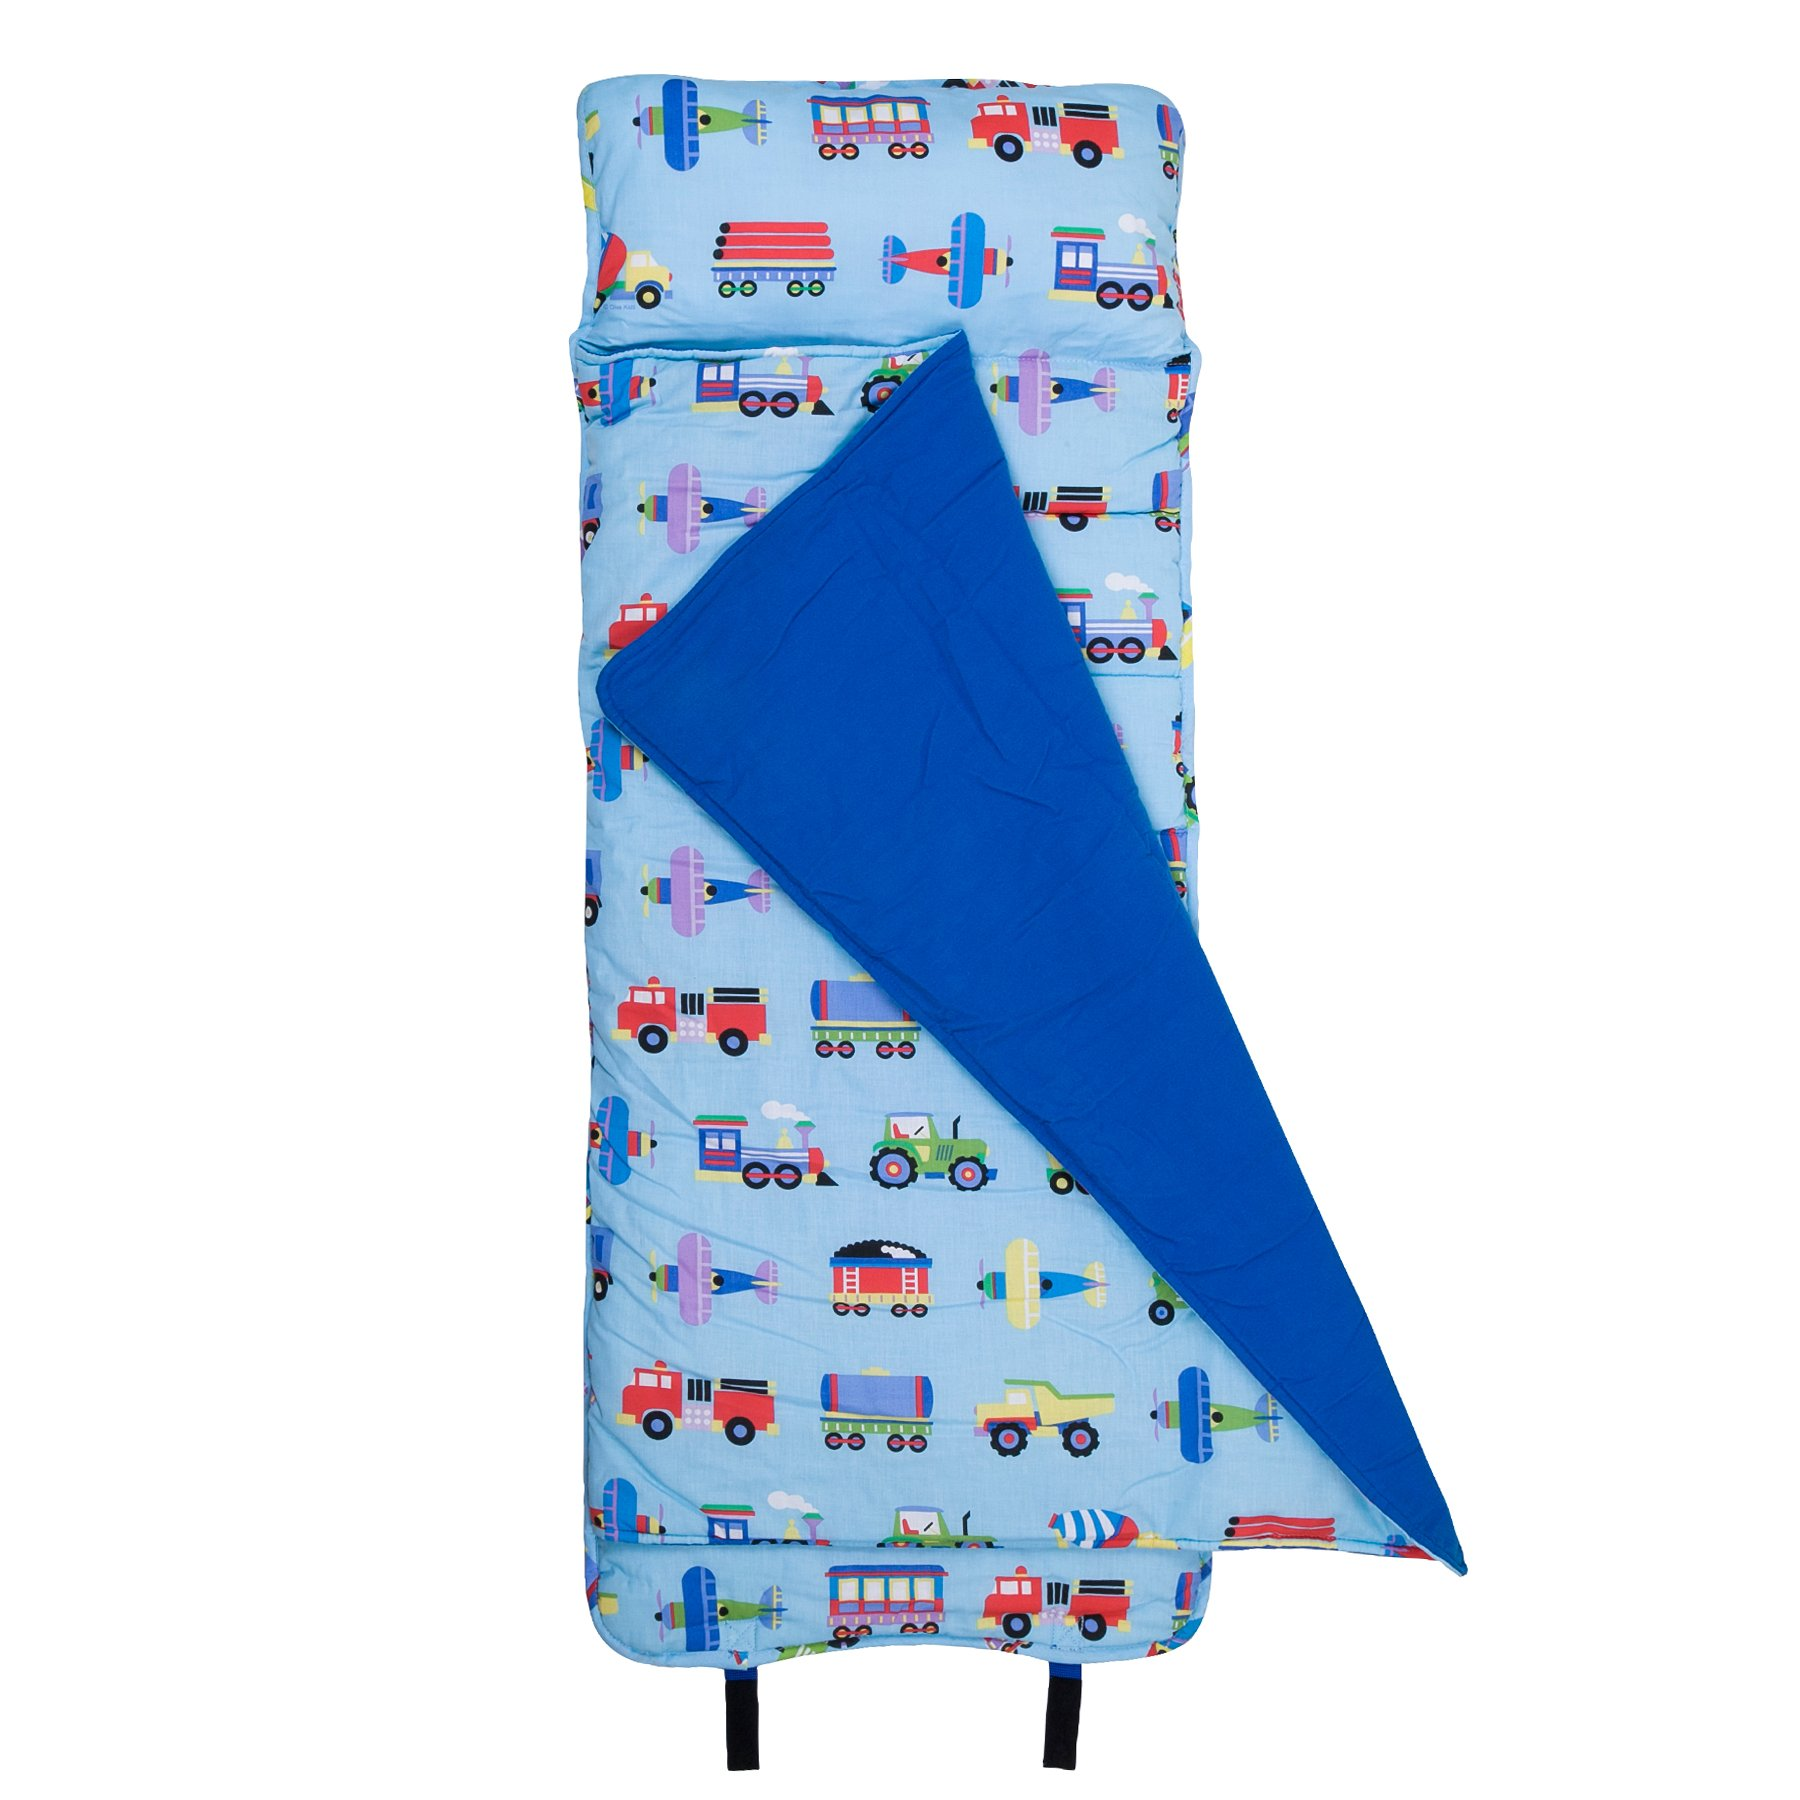 Wildkin Original Nap Mat, Features Built-In Blanket and Pillow, Perfect for Daycare and Preschool or Napping On-the-Go, Olive Kids Design – Trains, Planes, & Trucks by Wildkin (Image #1)